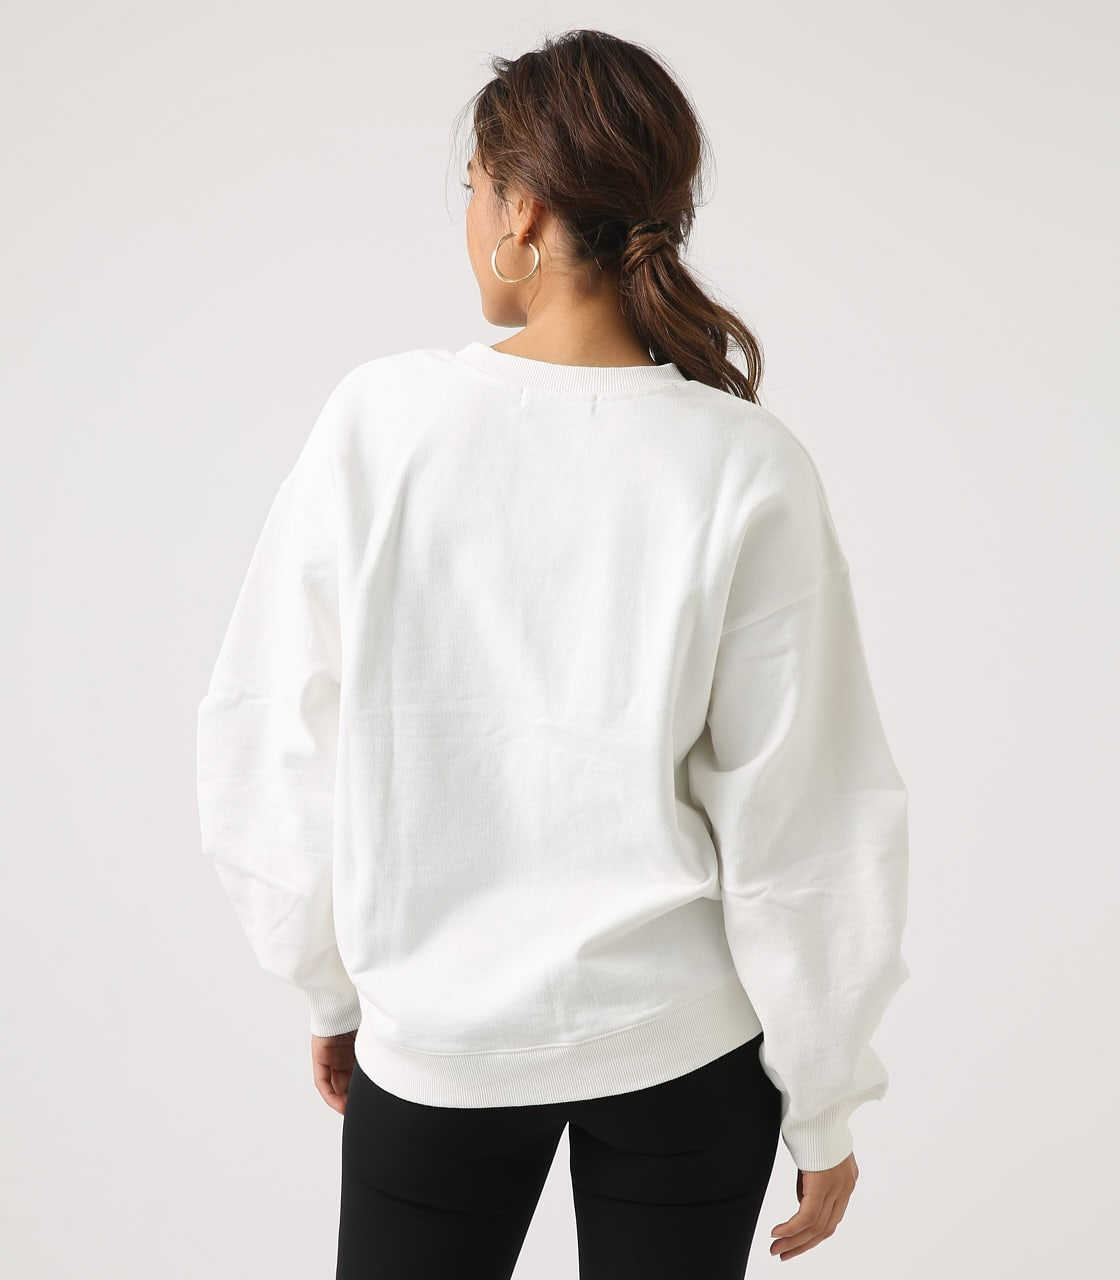 【AZUL BY MOUSSY】SLEEVE TUCK SWEAT TOPS 詳細画像 O/WHT 7